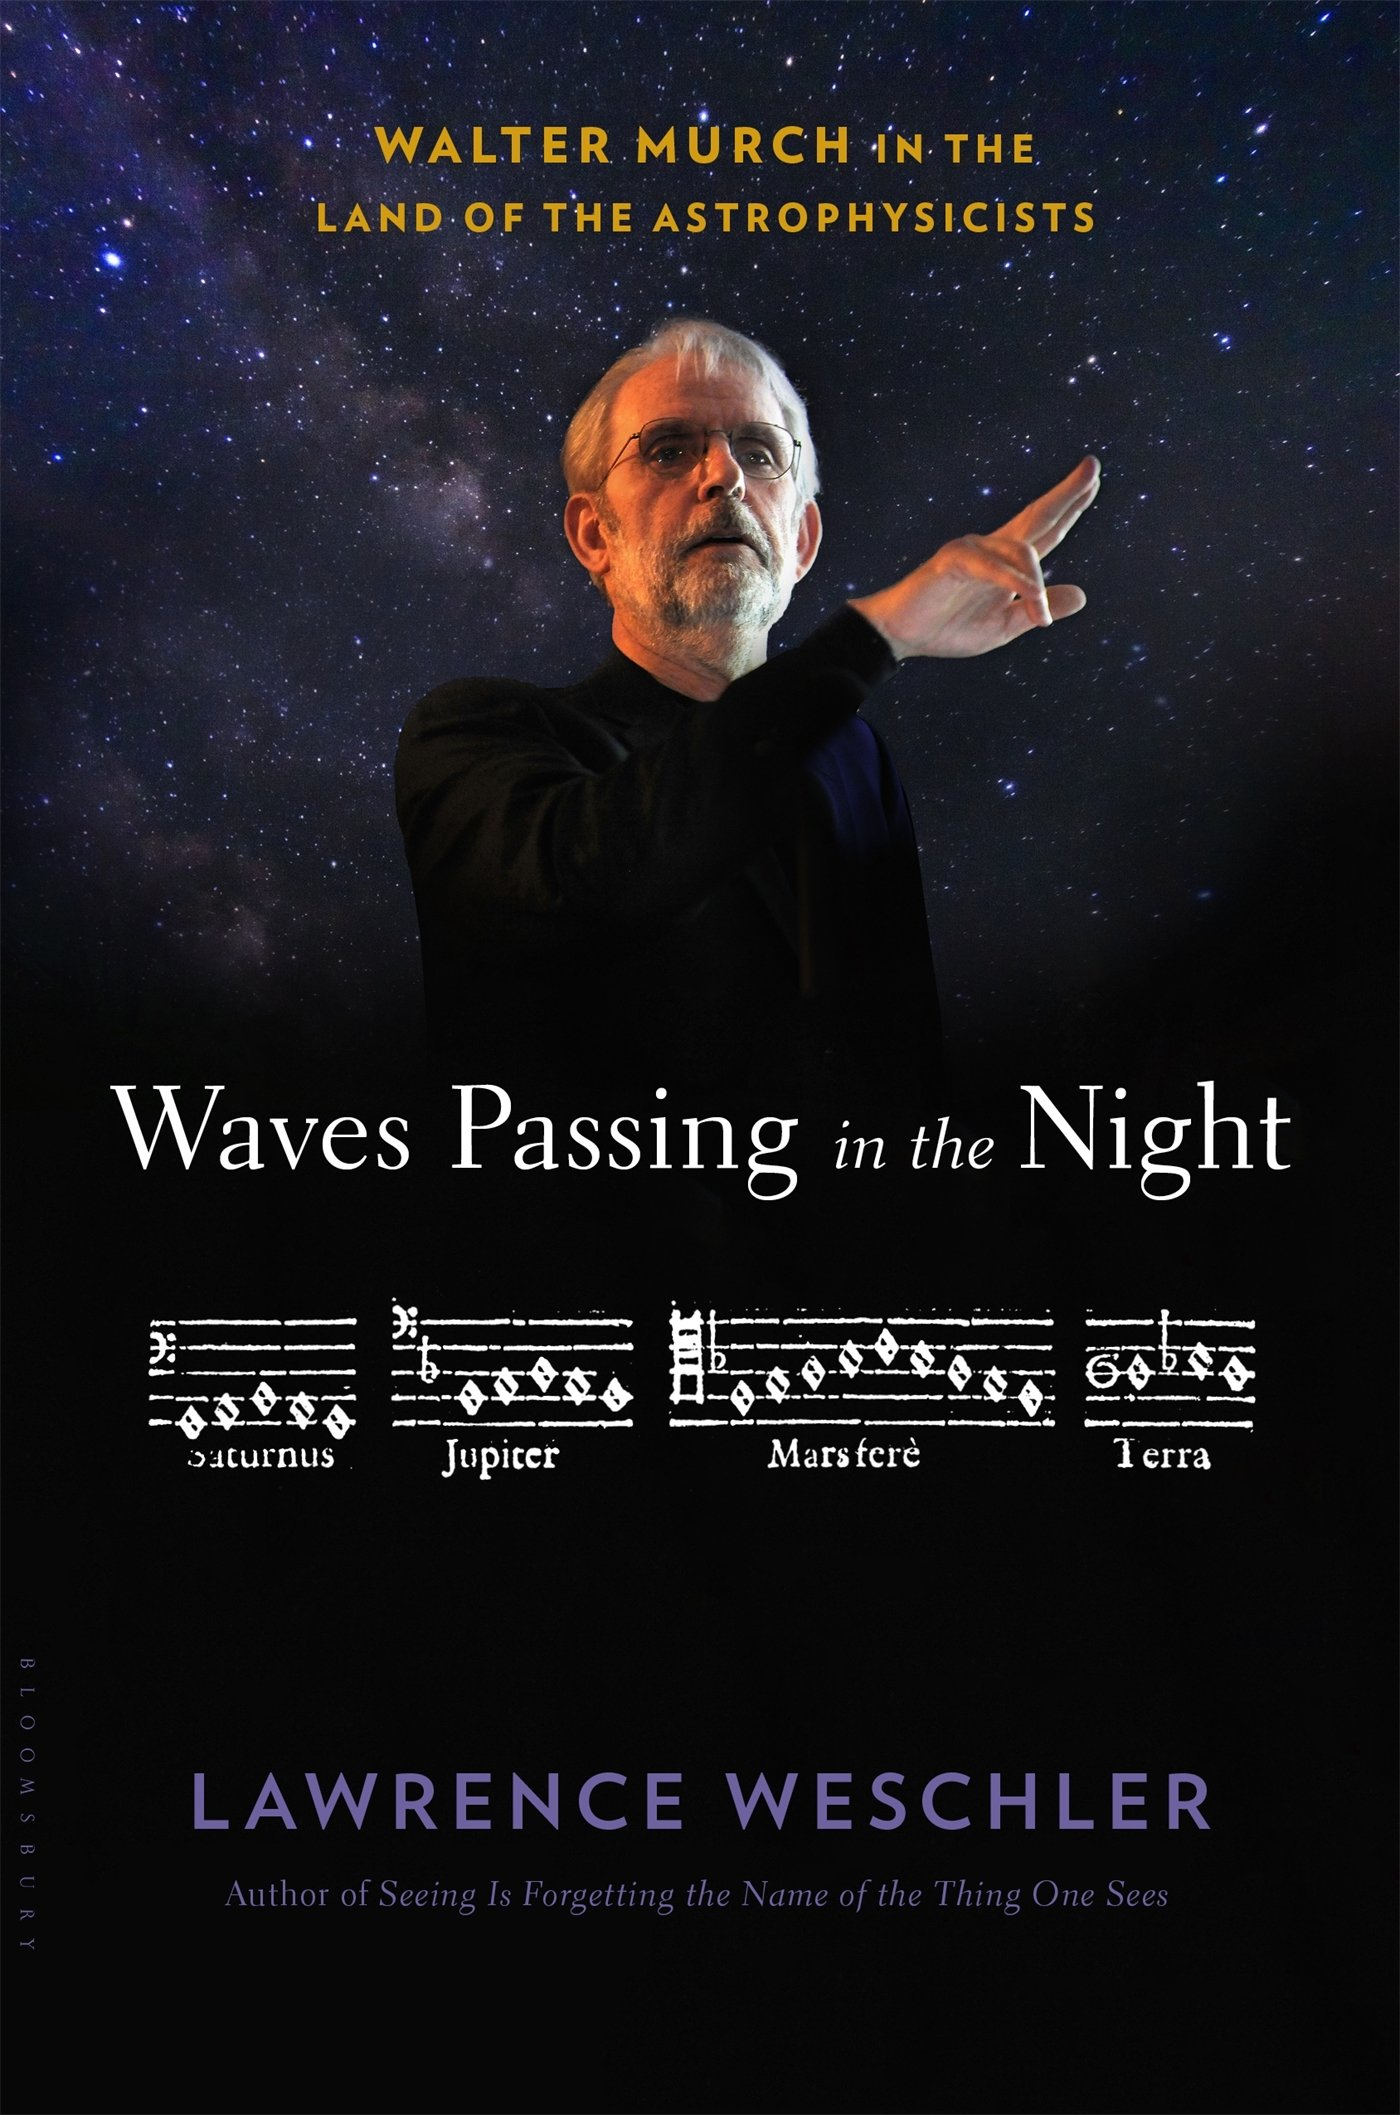 walter murch in the blink of an eye pdf download